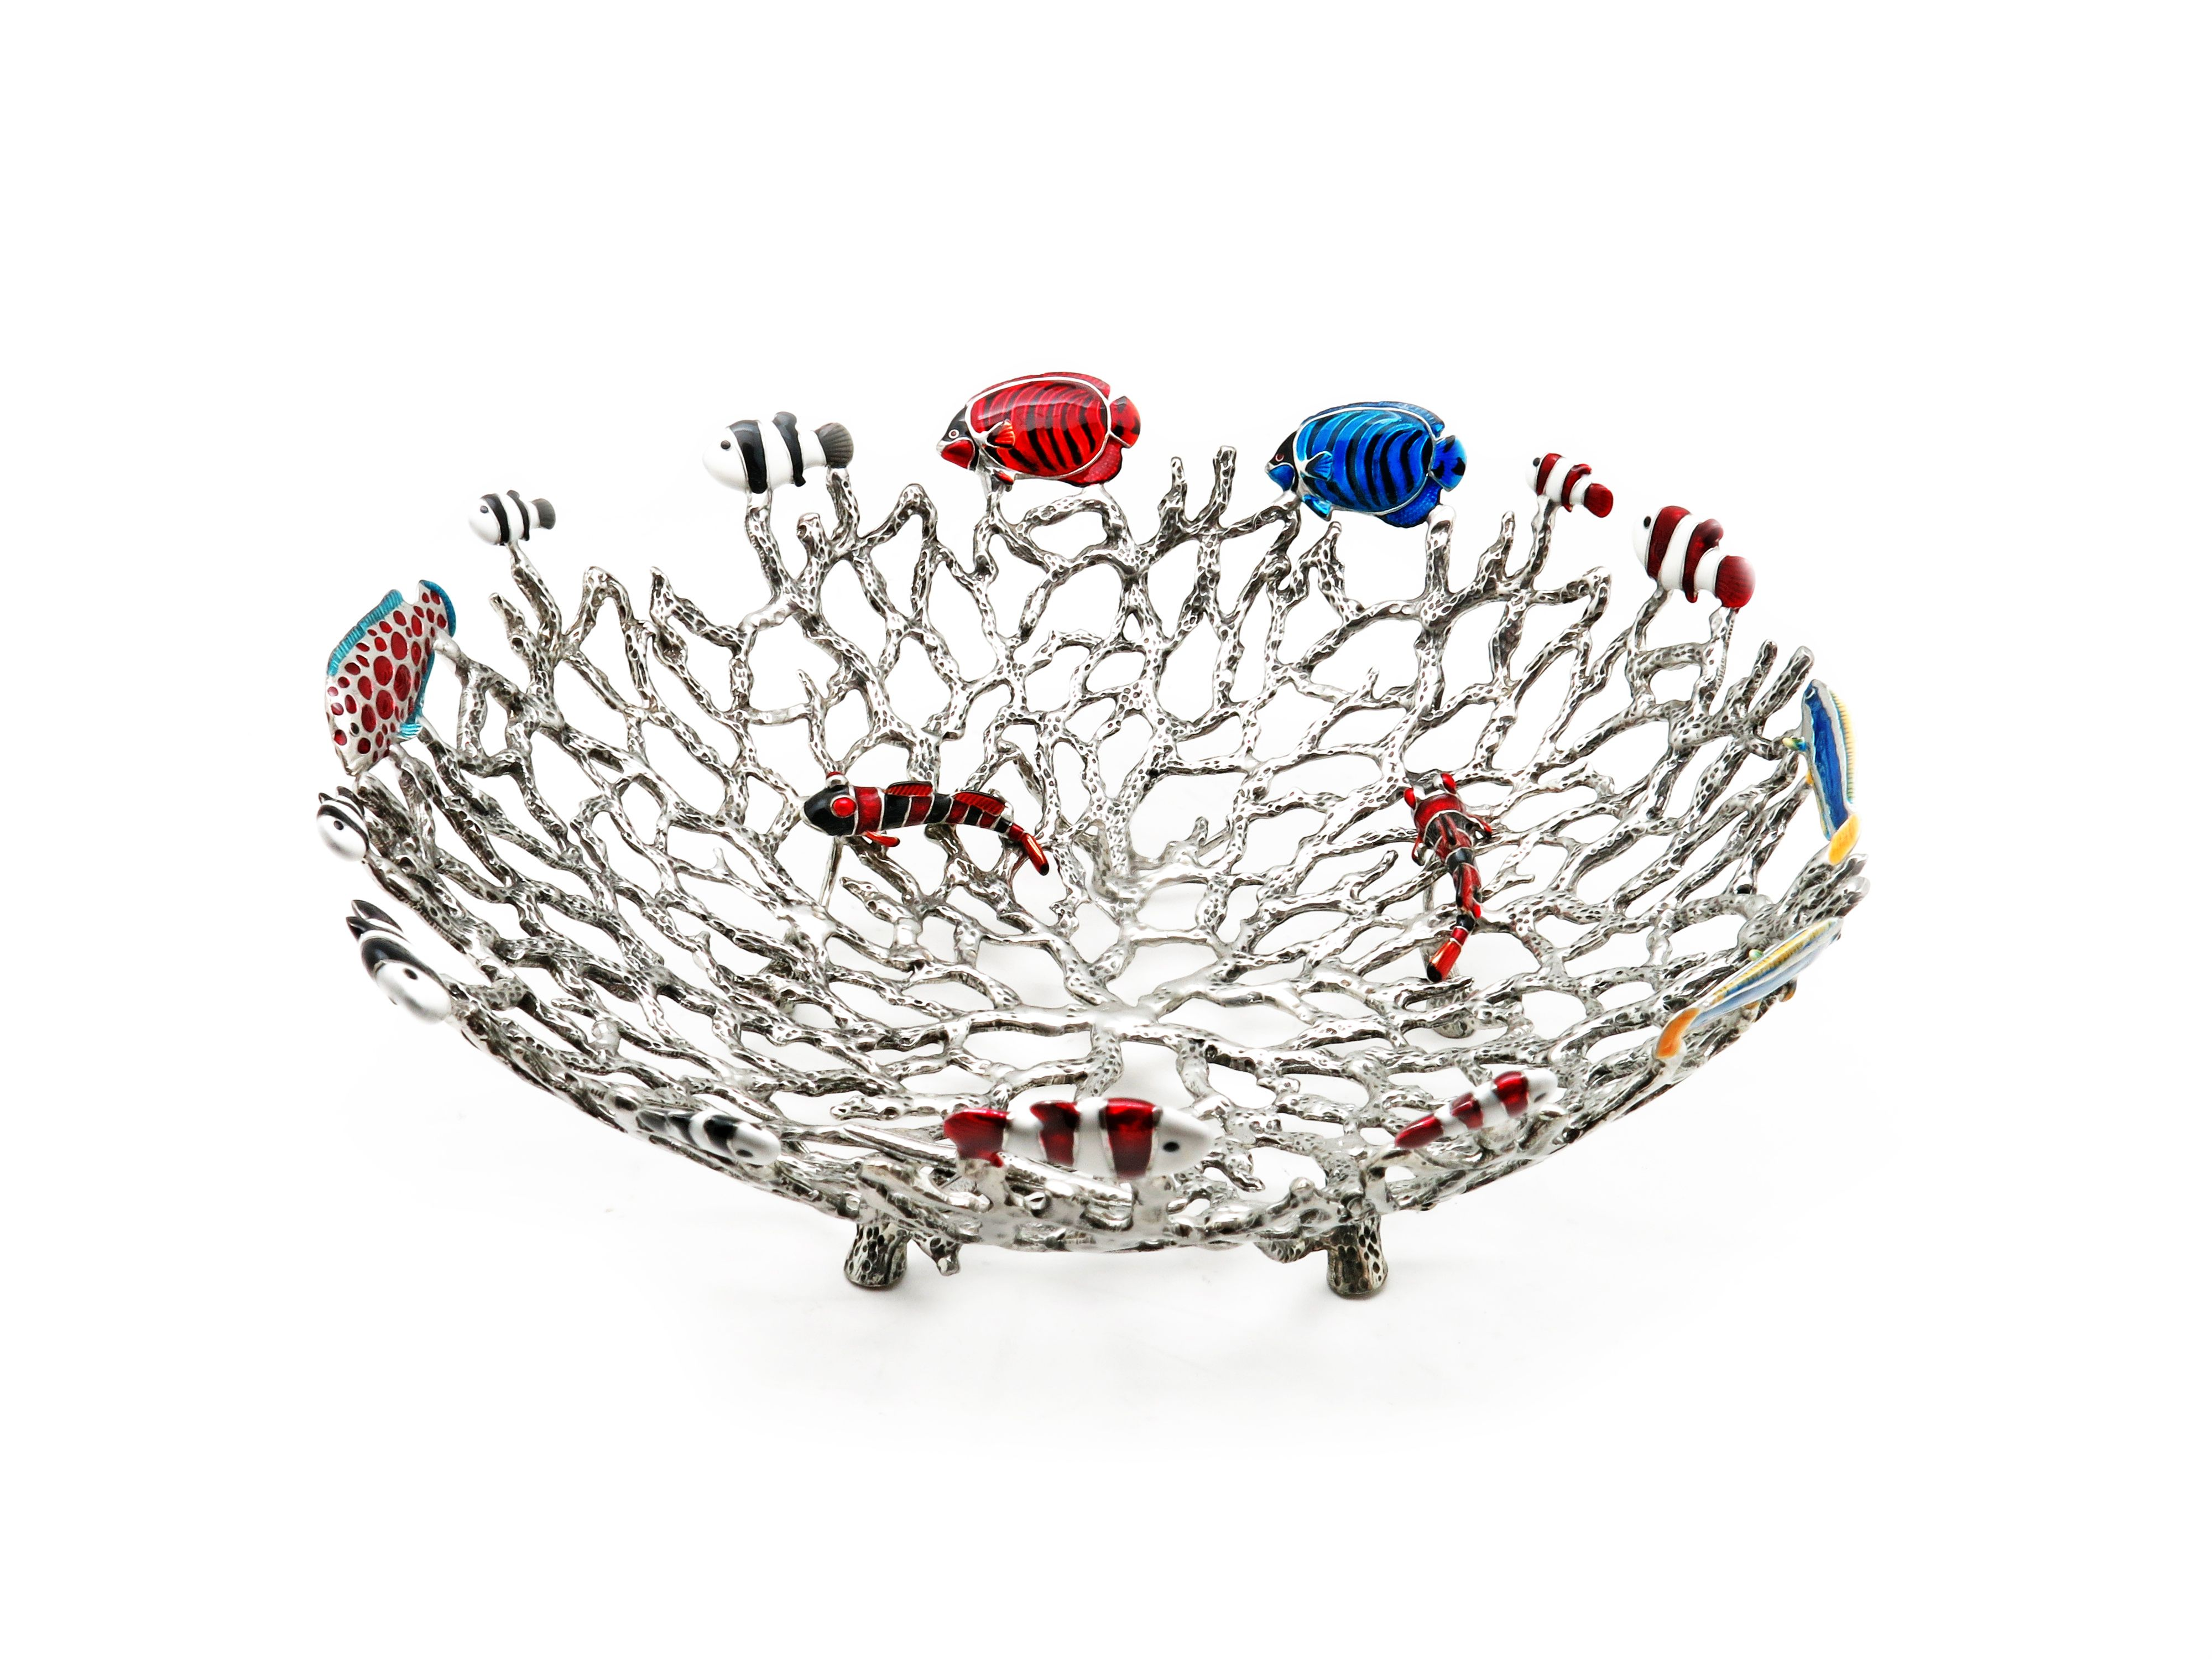 Handmade coral platter with beautiful fish details by Rosa Singh